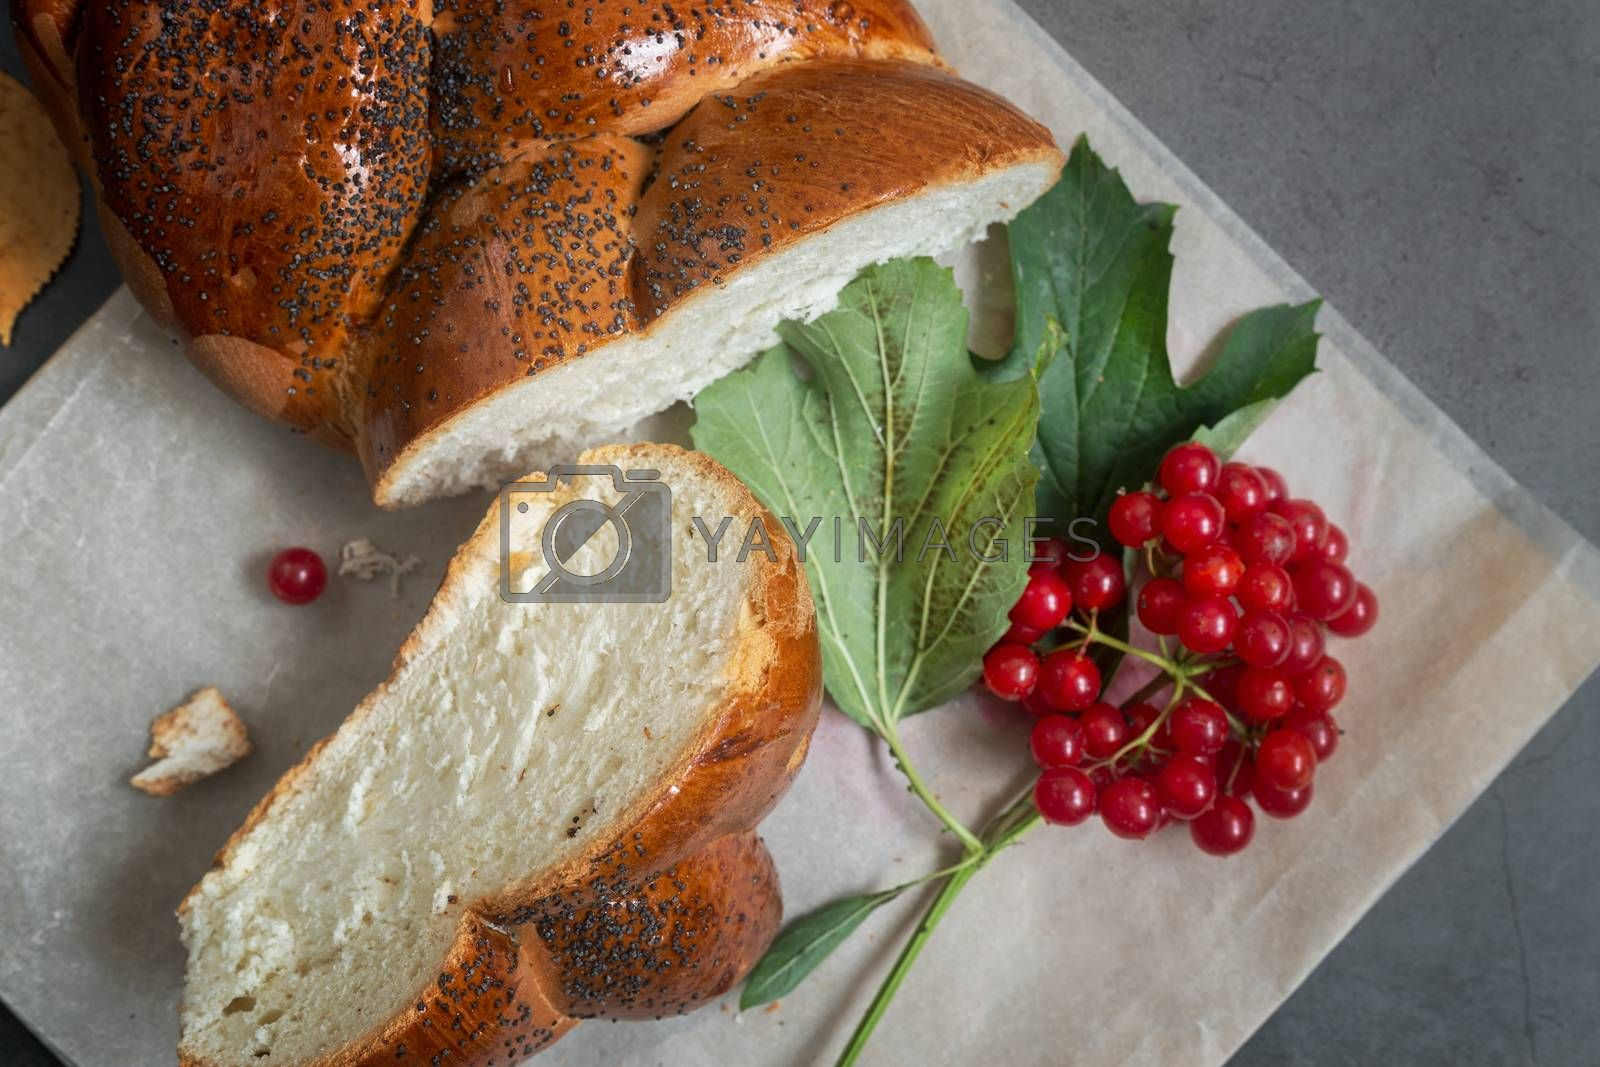 On the table is a sliced loaf of white bread with a crisp crust sprinkled with poppy seeds. Next to the knife and viburnum berries. Front view, dark background, copy space